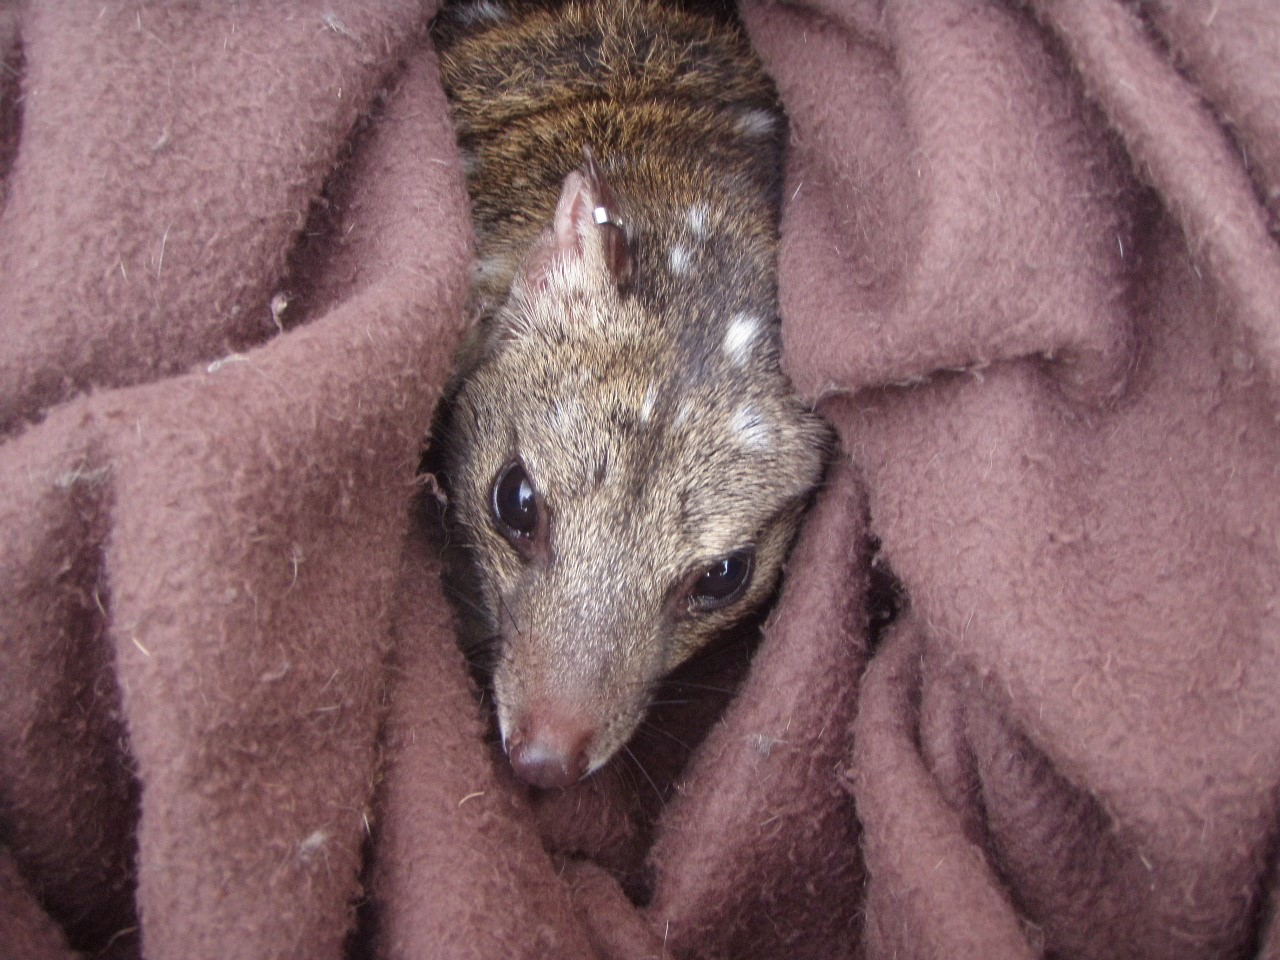 Biodioversity and Ecology Assessments - Western quoll (Dasyurus geoffroii)